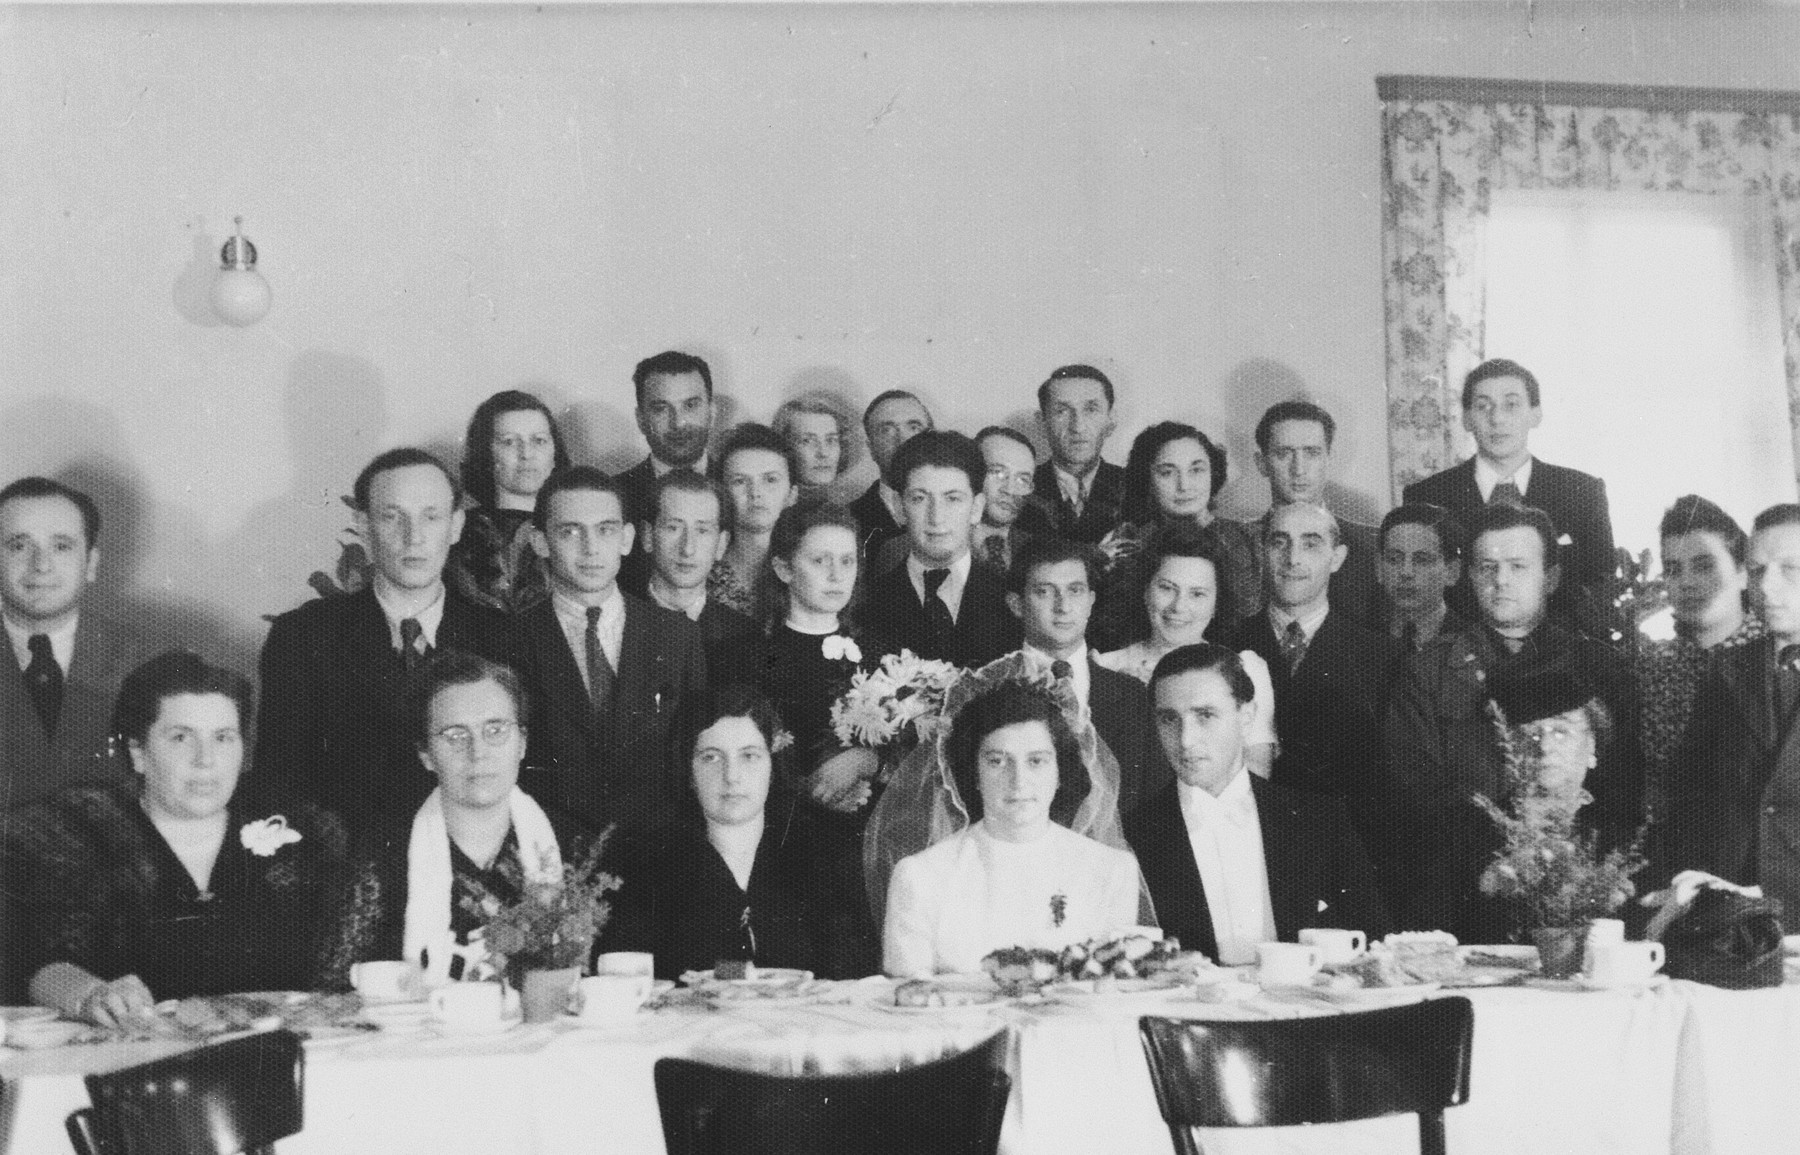 Group portrait of friends and relatives who are celebrating the marriage of Lily Fischel and Leon Pancis in the Bad Wildungen displaced persons' camp.  The bride and groom met each other in concentration camp.  Ludwig Fischel, a cousin of the bride, is pictured on the right with a flower on his suit.